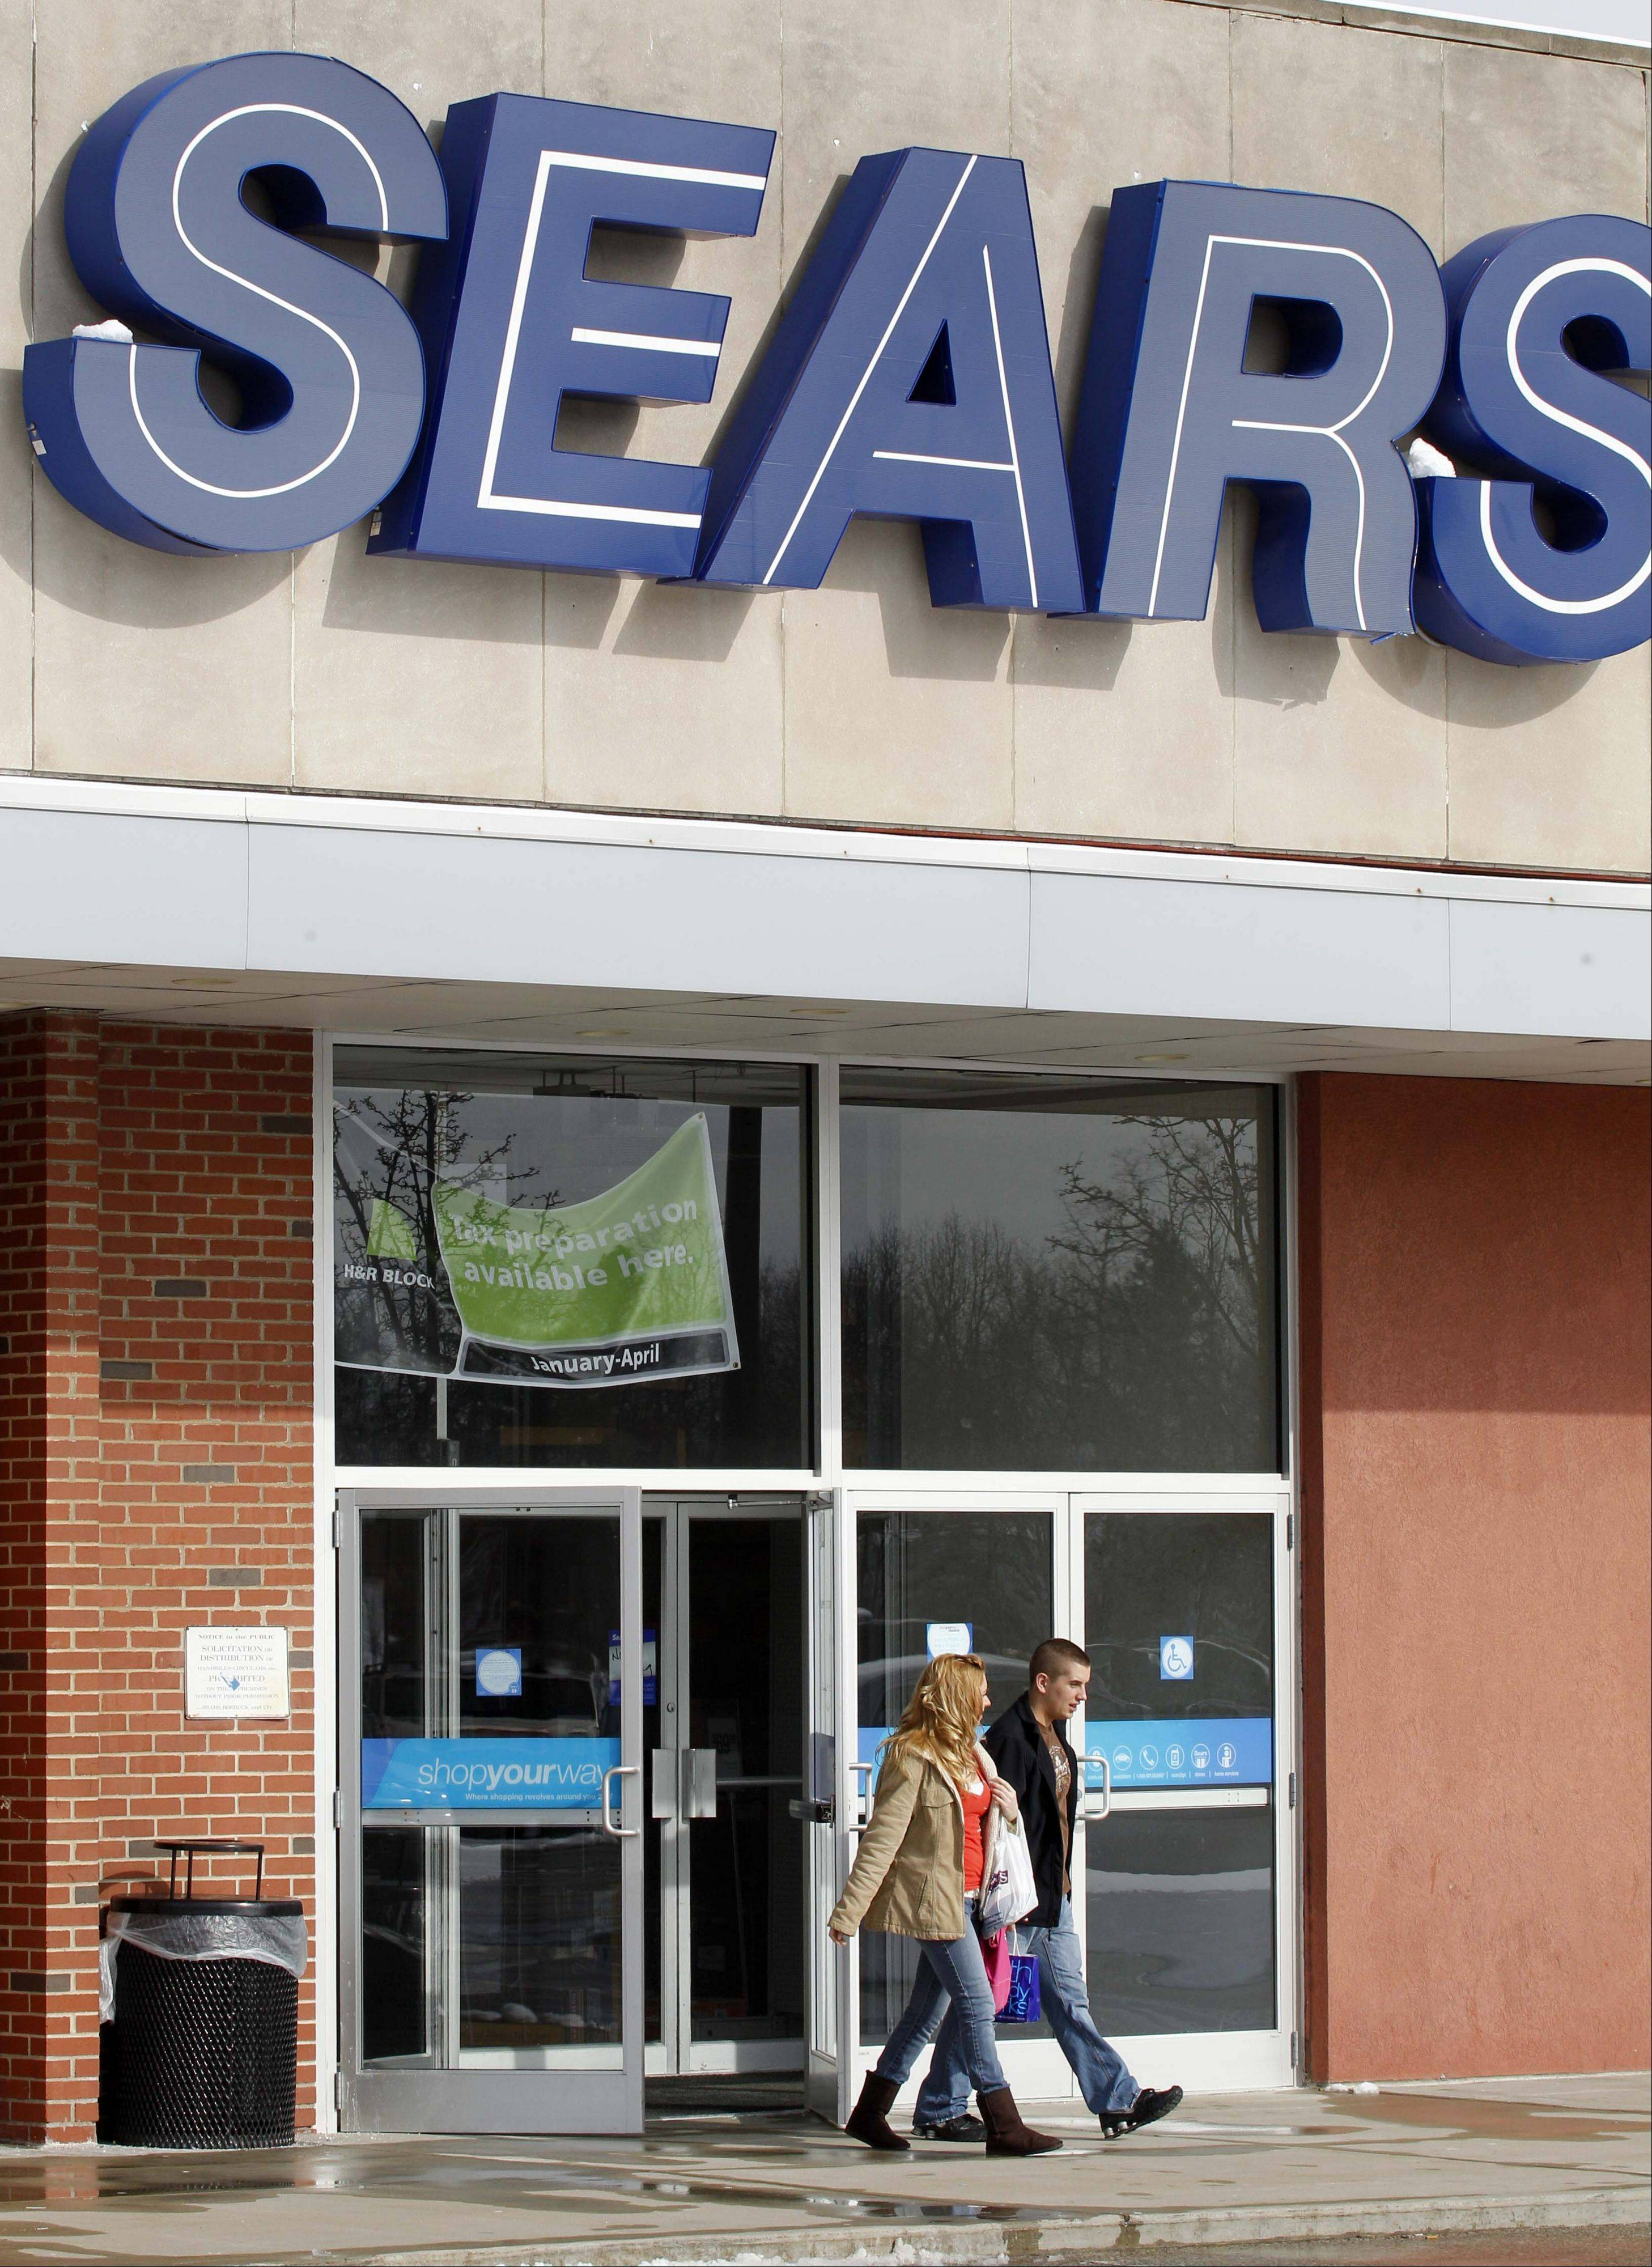 When Sears fell off the Standard & Poor's 500 Index on Thursday, it led to a fall in its stock price.